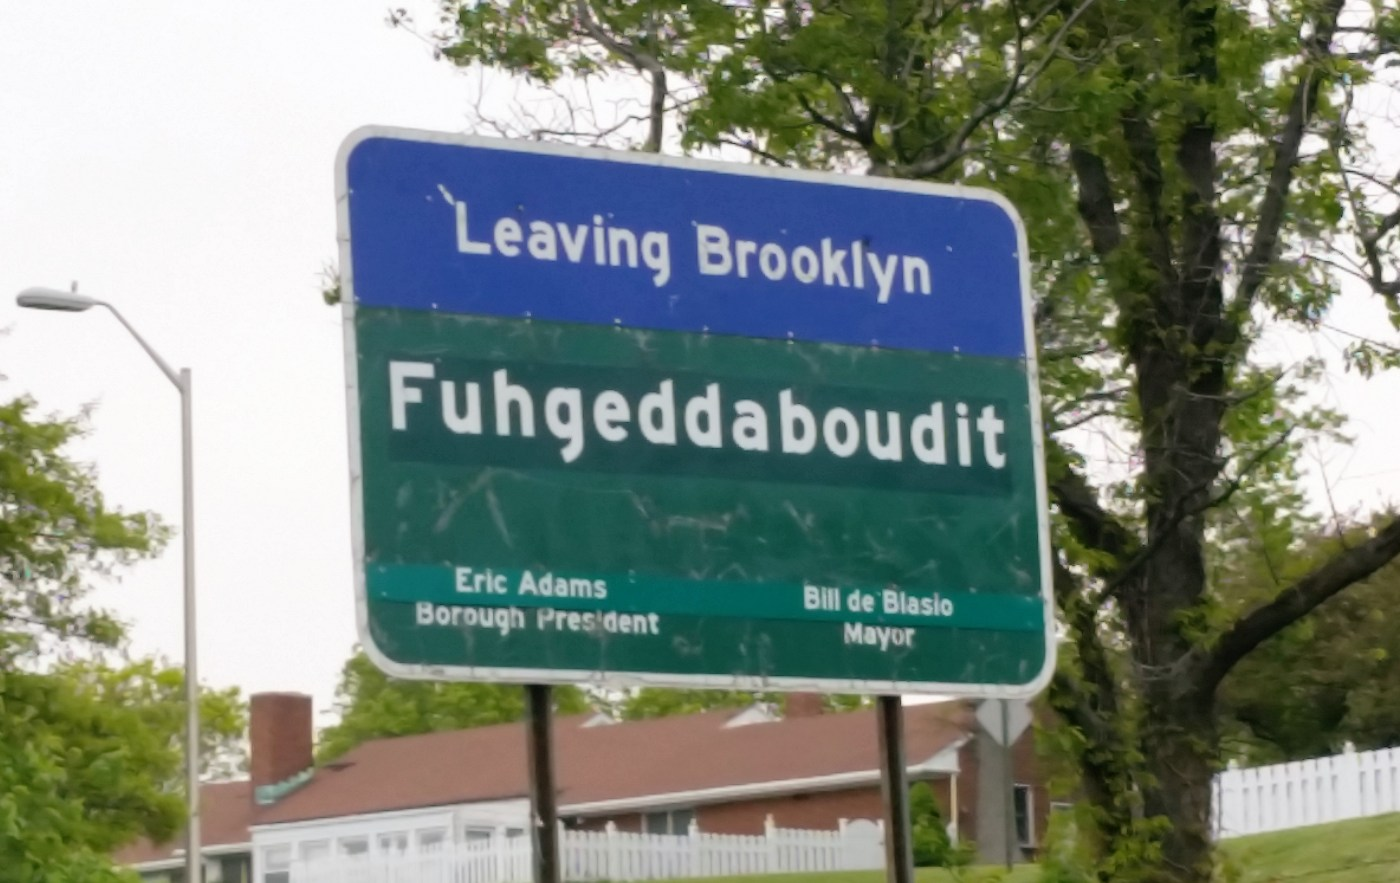 Leaving Brooklyn - Fugheddaboudit